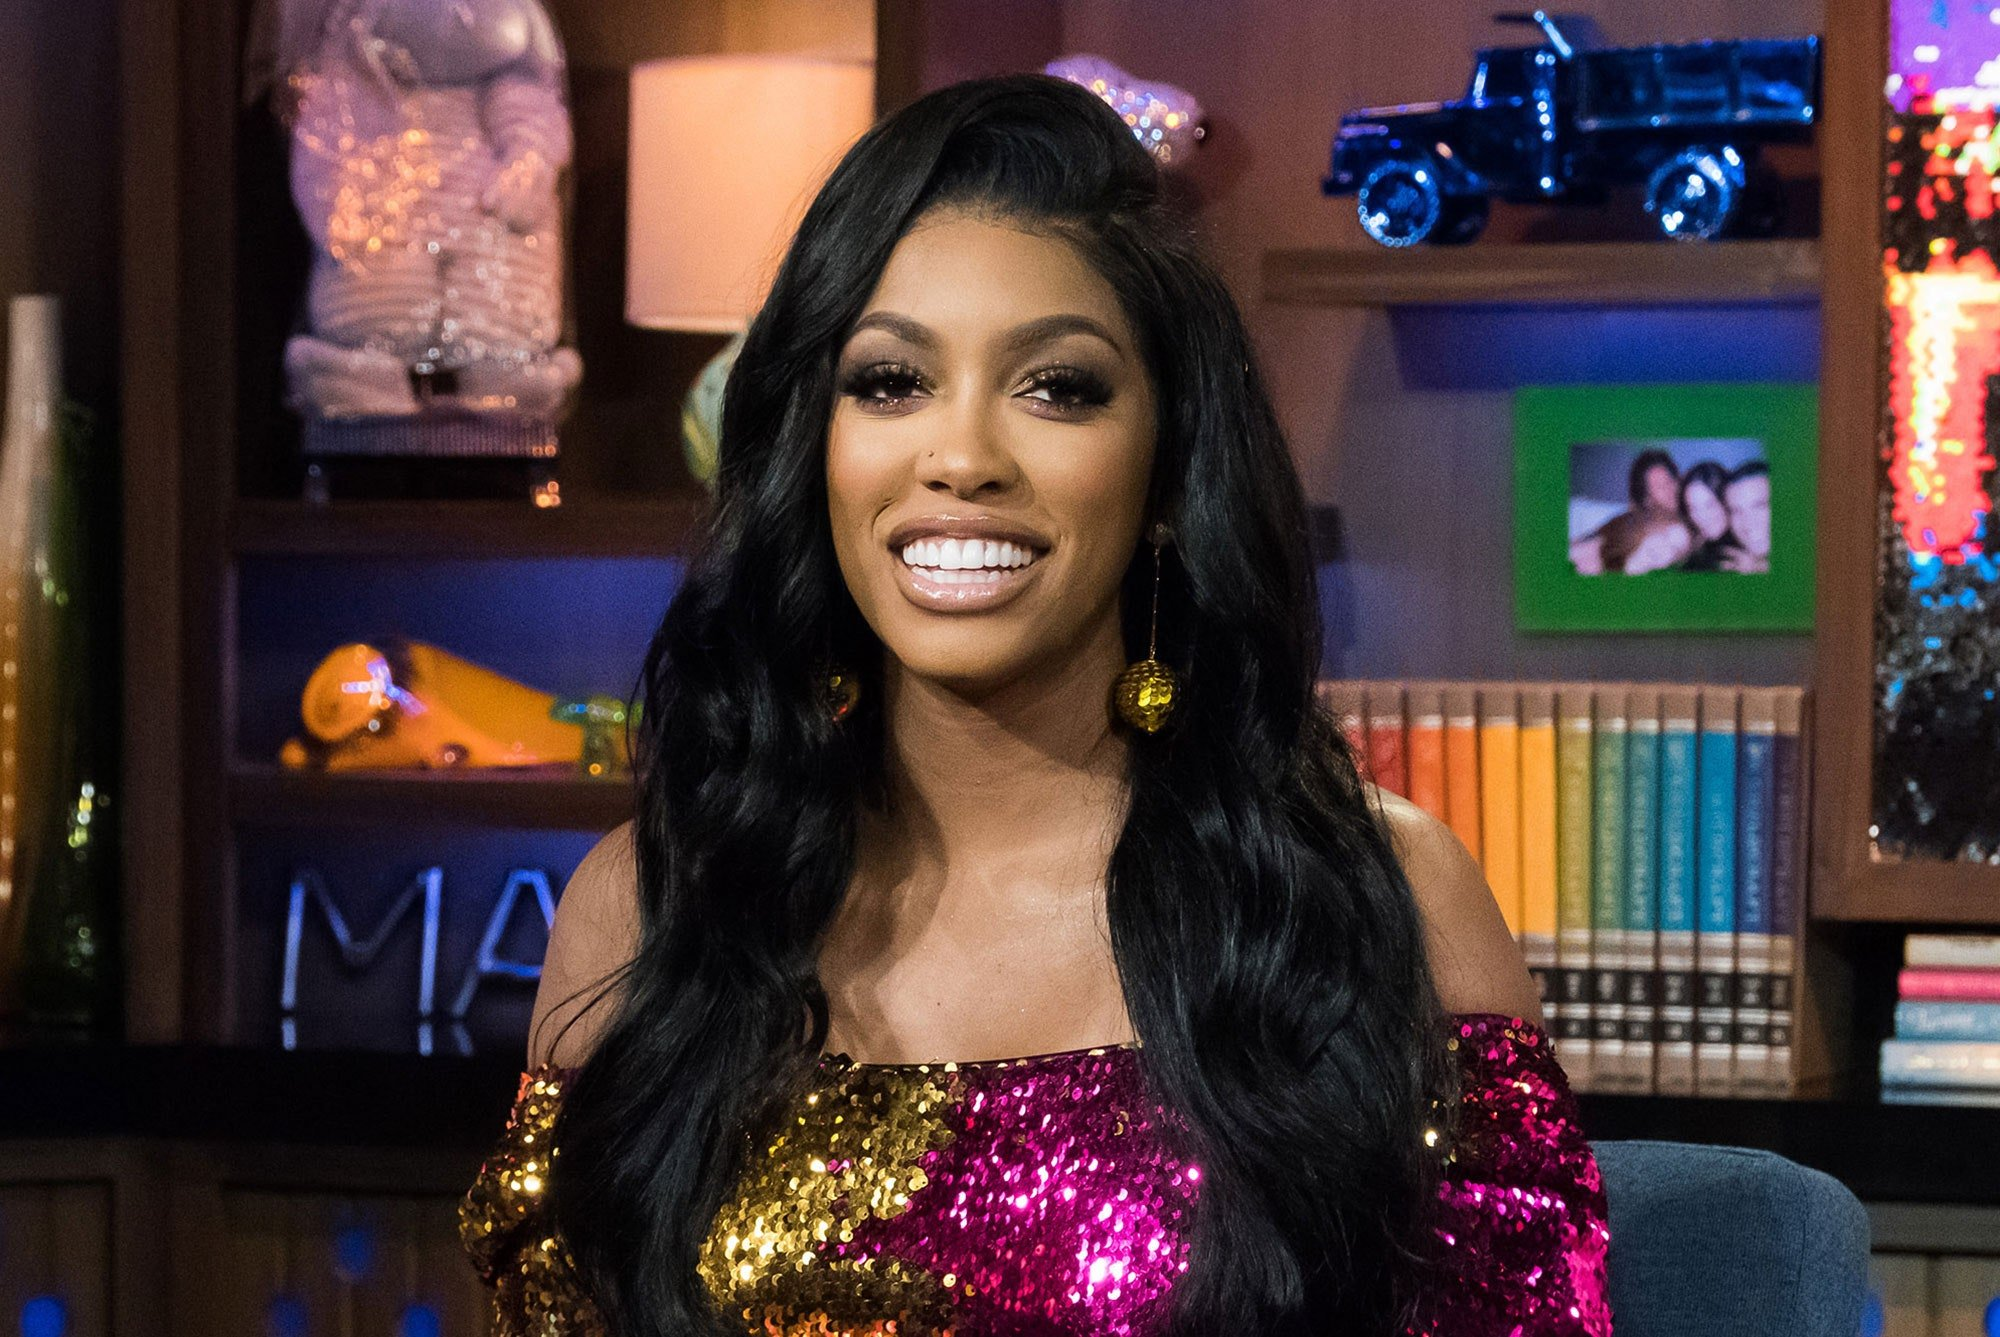 Goofy Porsha Williams Shows Off Some Sensual Moves For The 'Gram – Check Out Her Clip Here